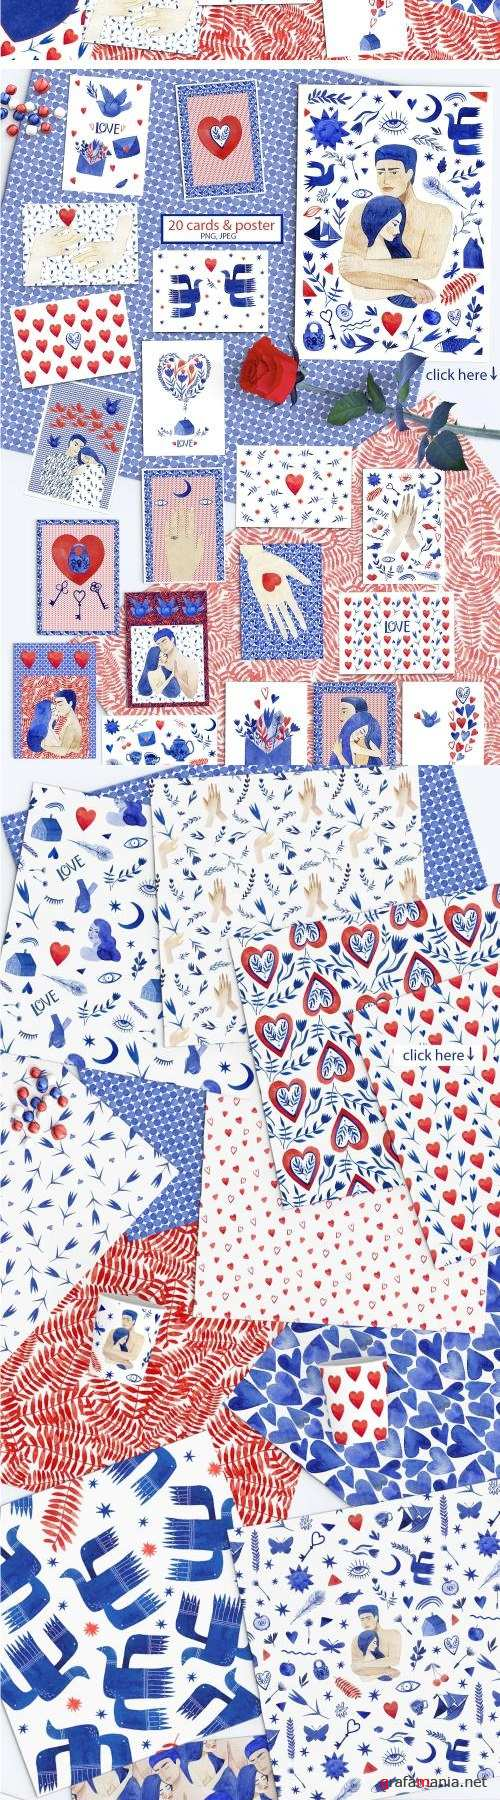 Valentine's patterns & cards. Love - 2250545